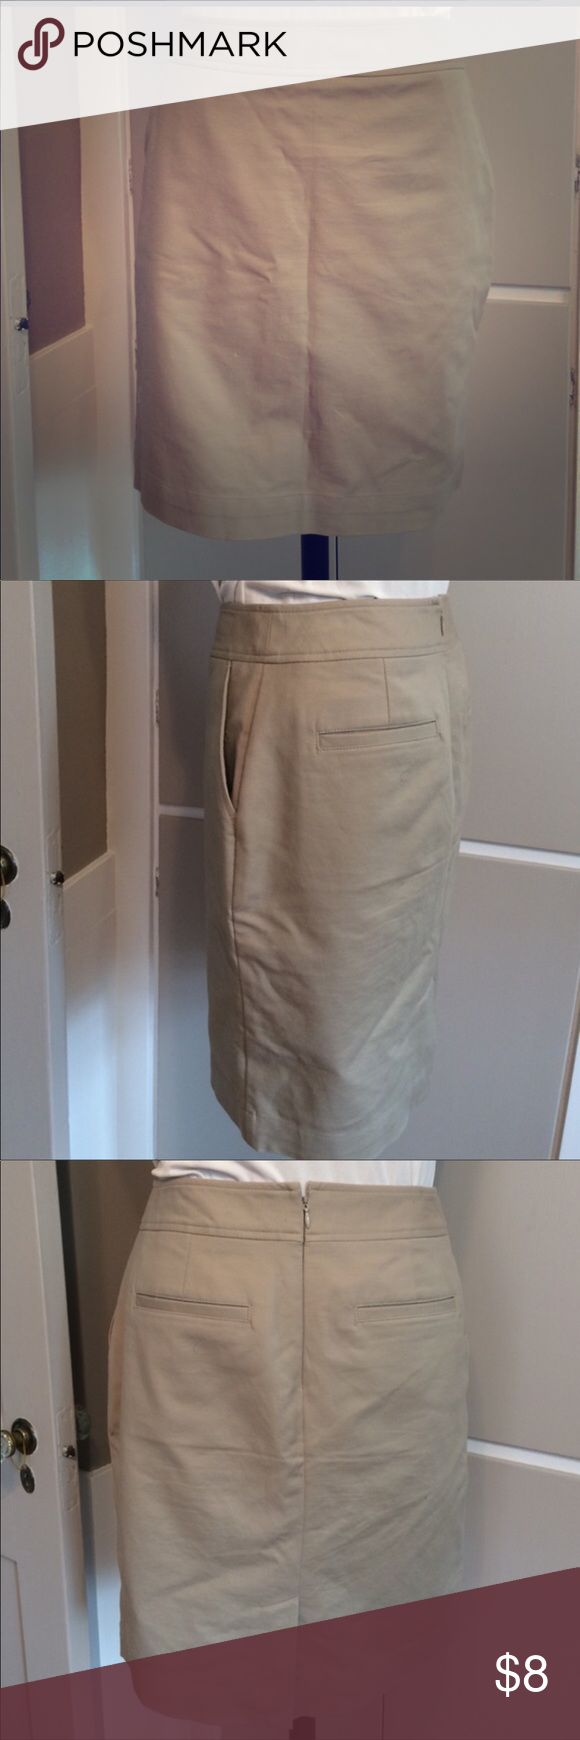 Khaki pencil skirt Great skirt for work! Khaki stretch pencil skirt with pockets from Merona. Only been worn twice Merona Skirts Pencil